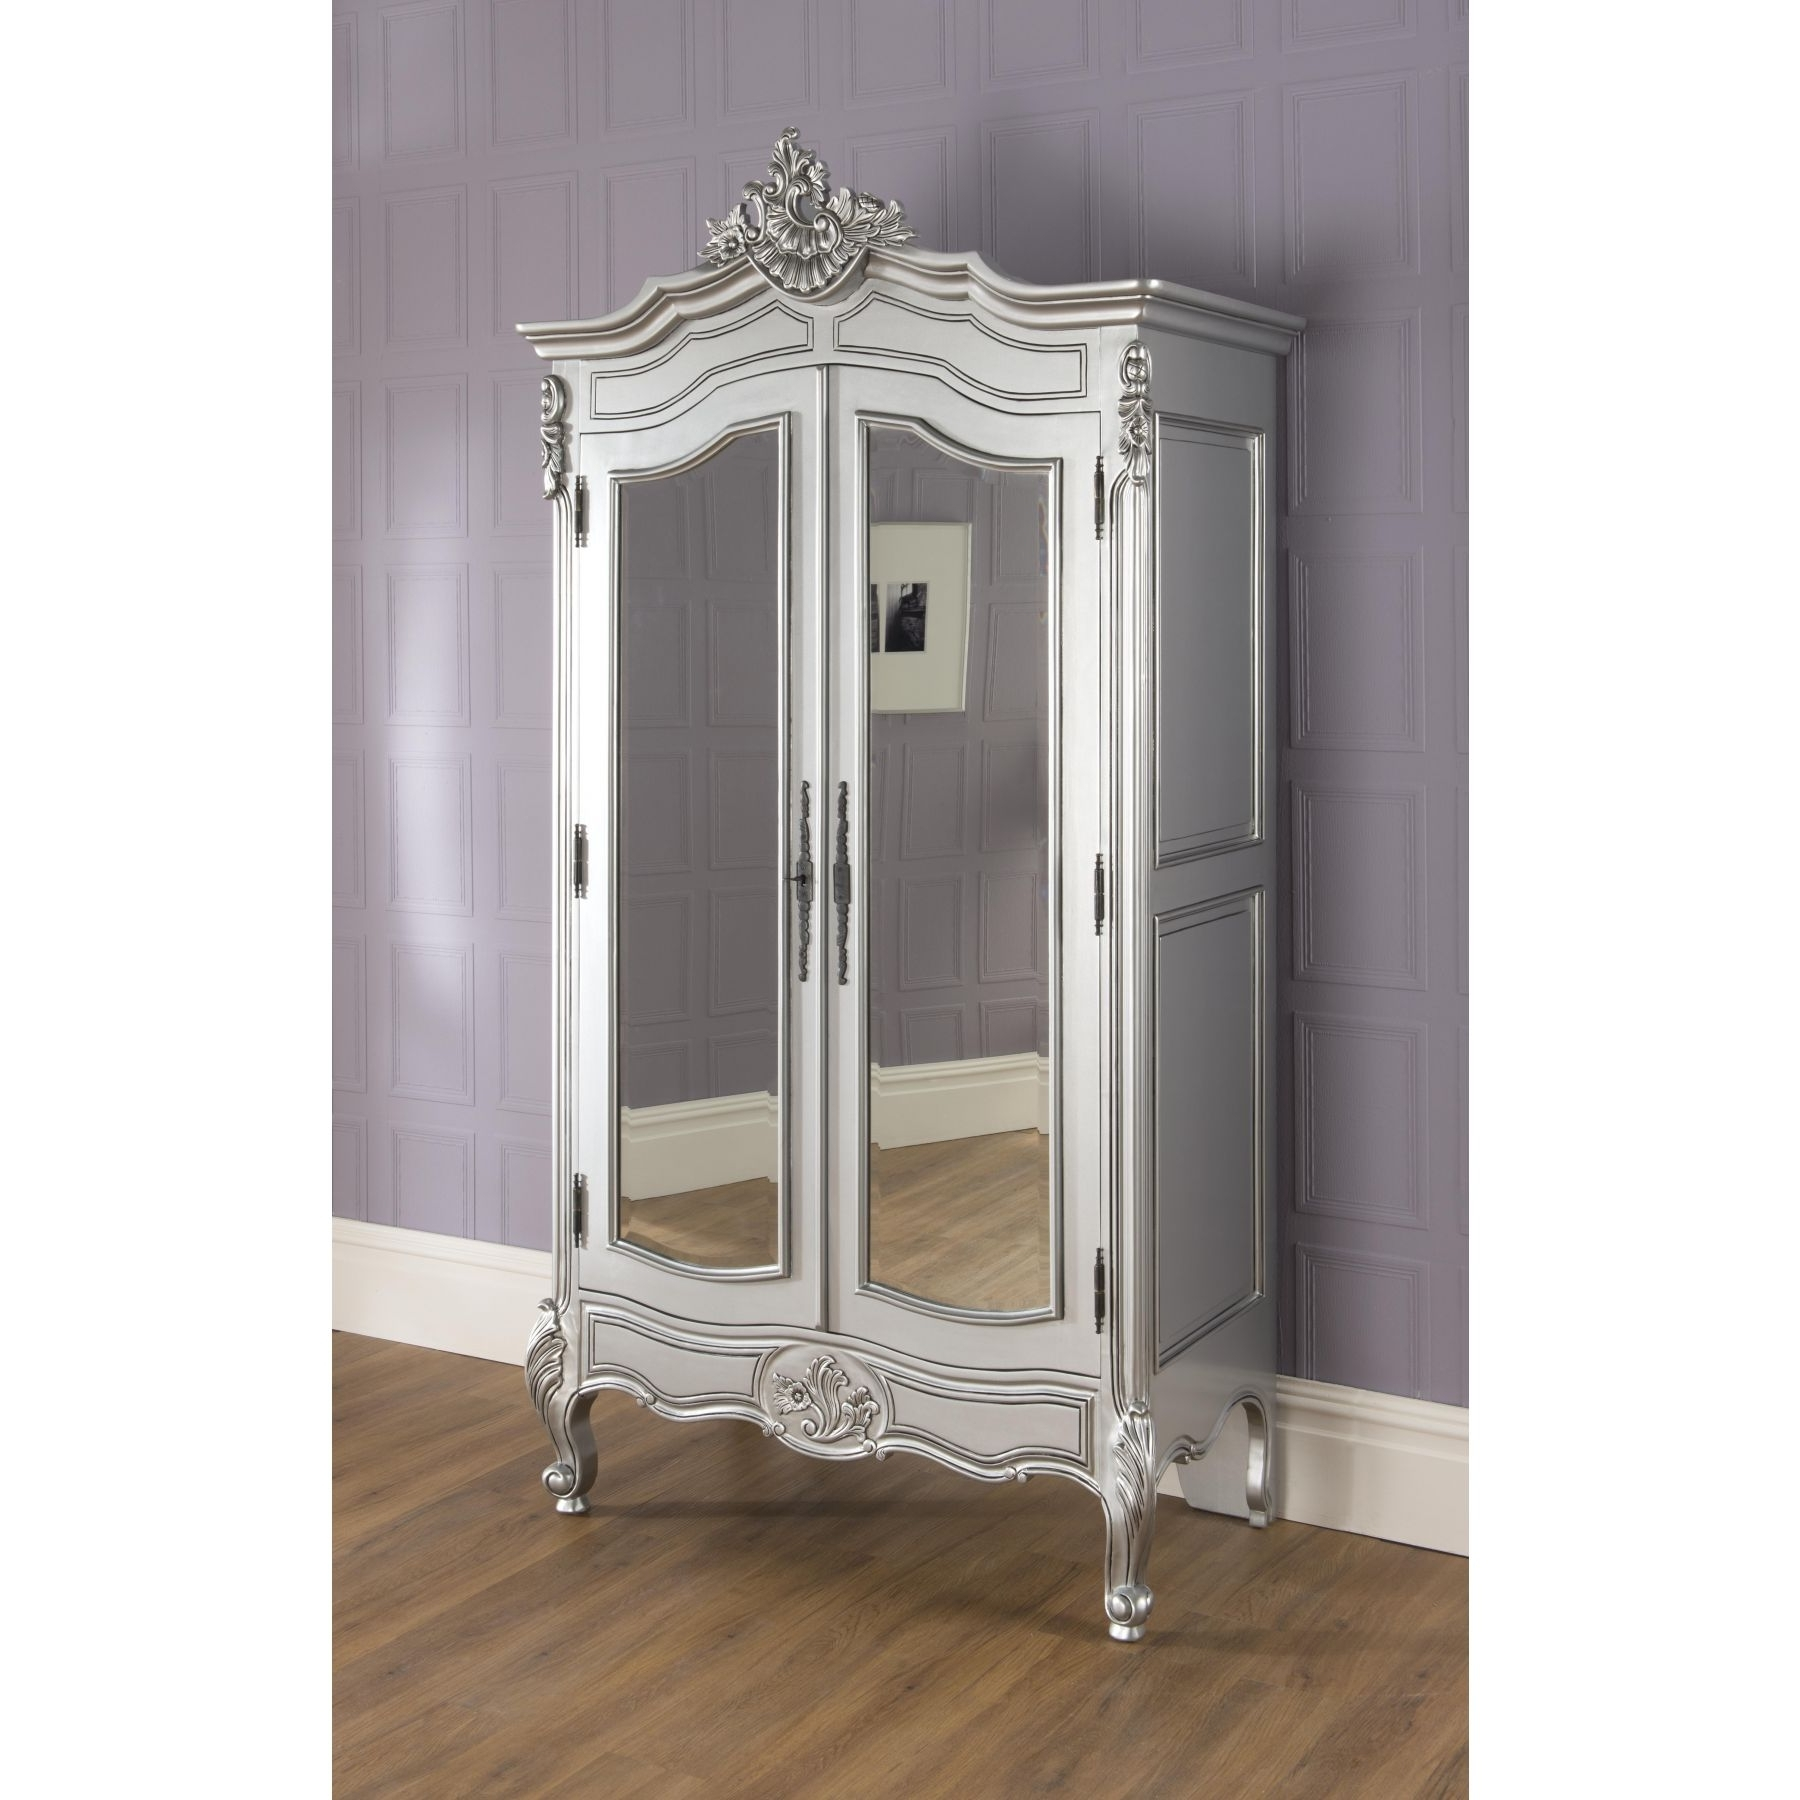 Popular White French Armoire Wardrobes In Bedroom: Antique Interior Storage Design With Wardrobe Armoire (View 10 of 15)